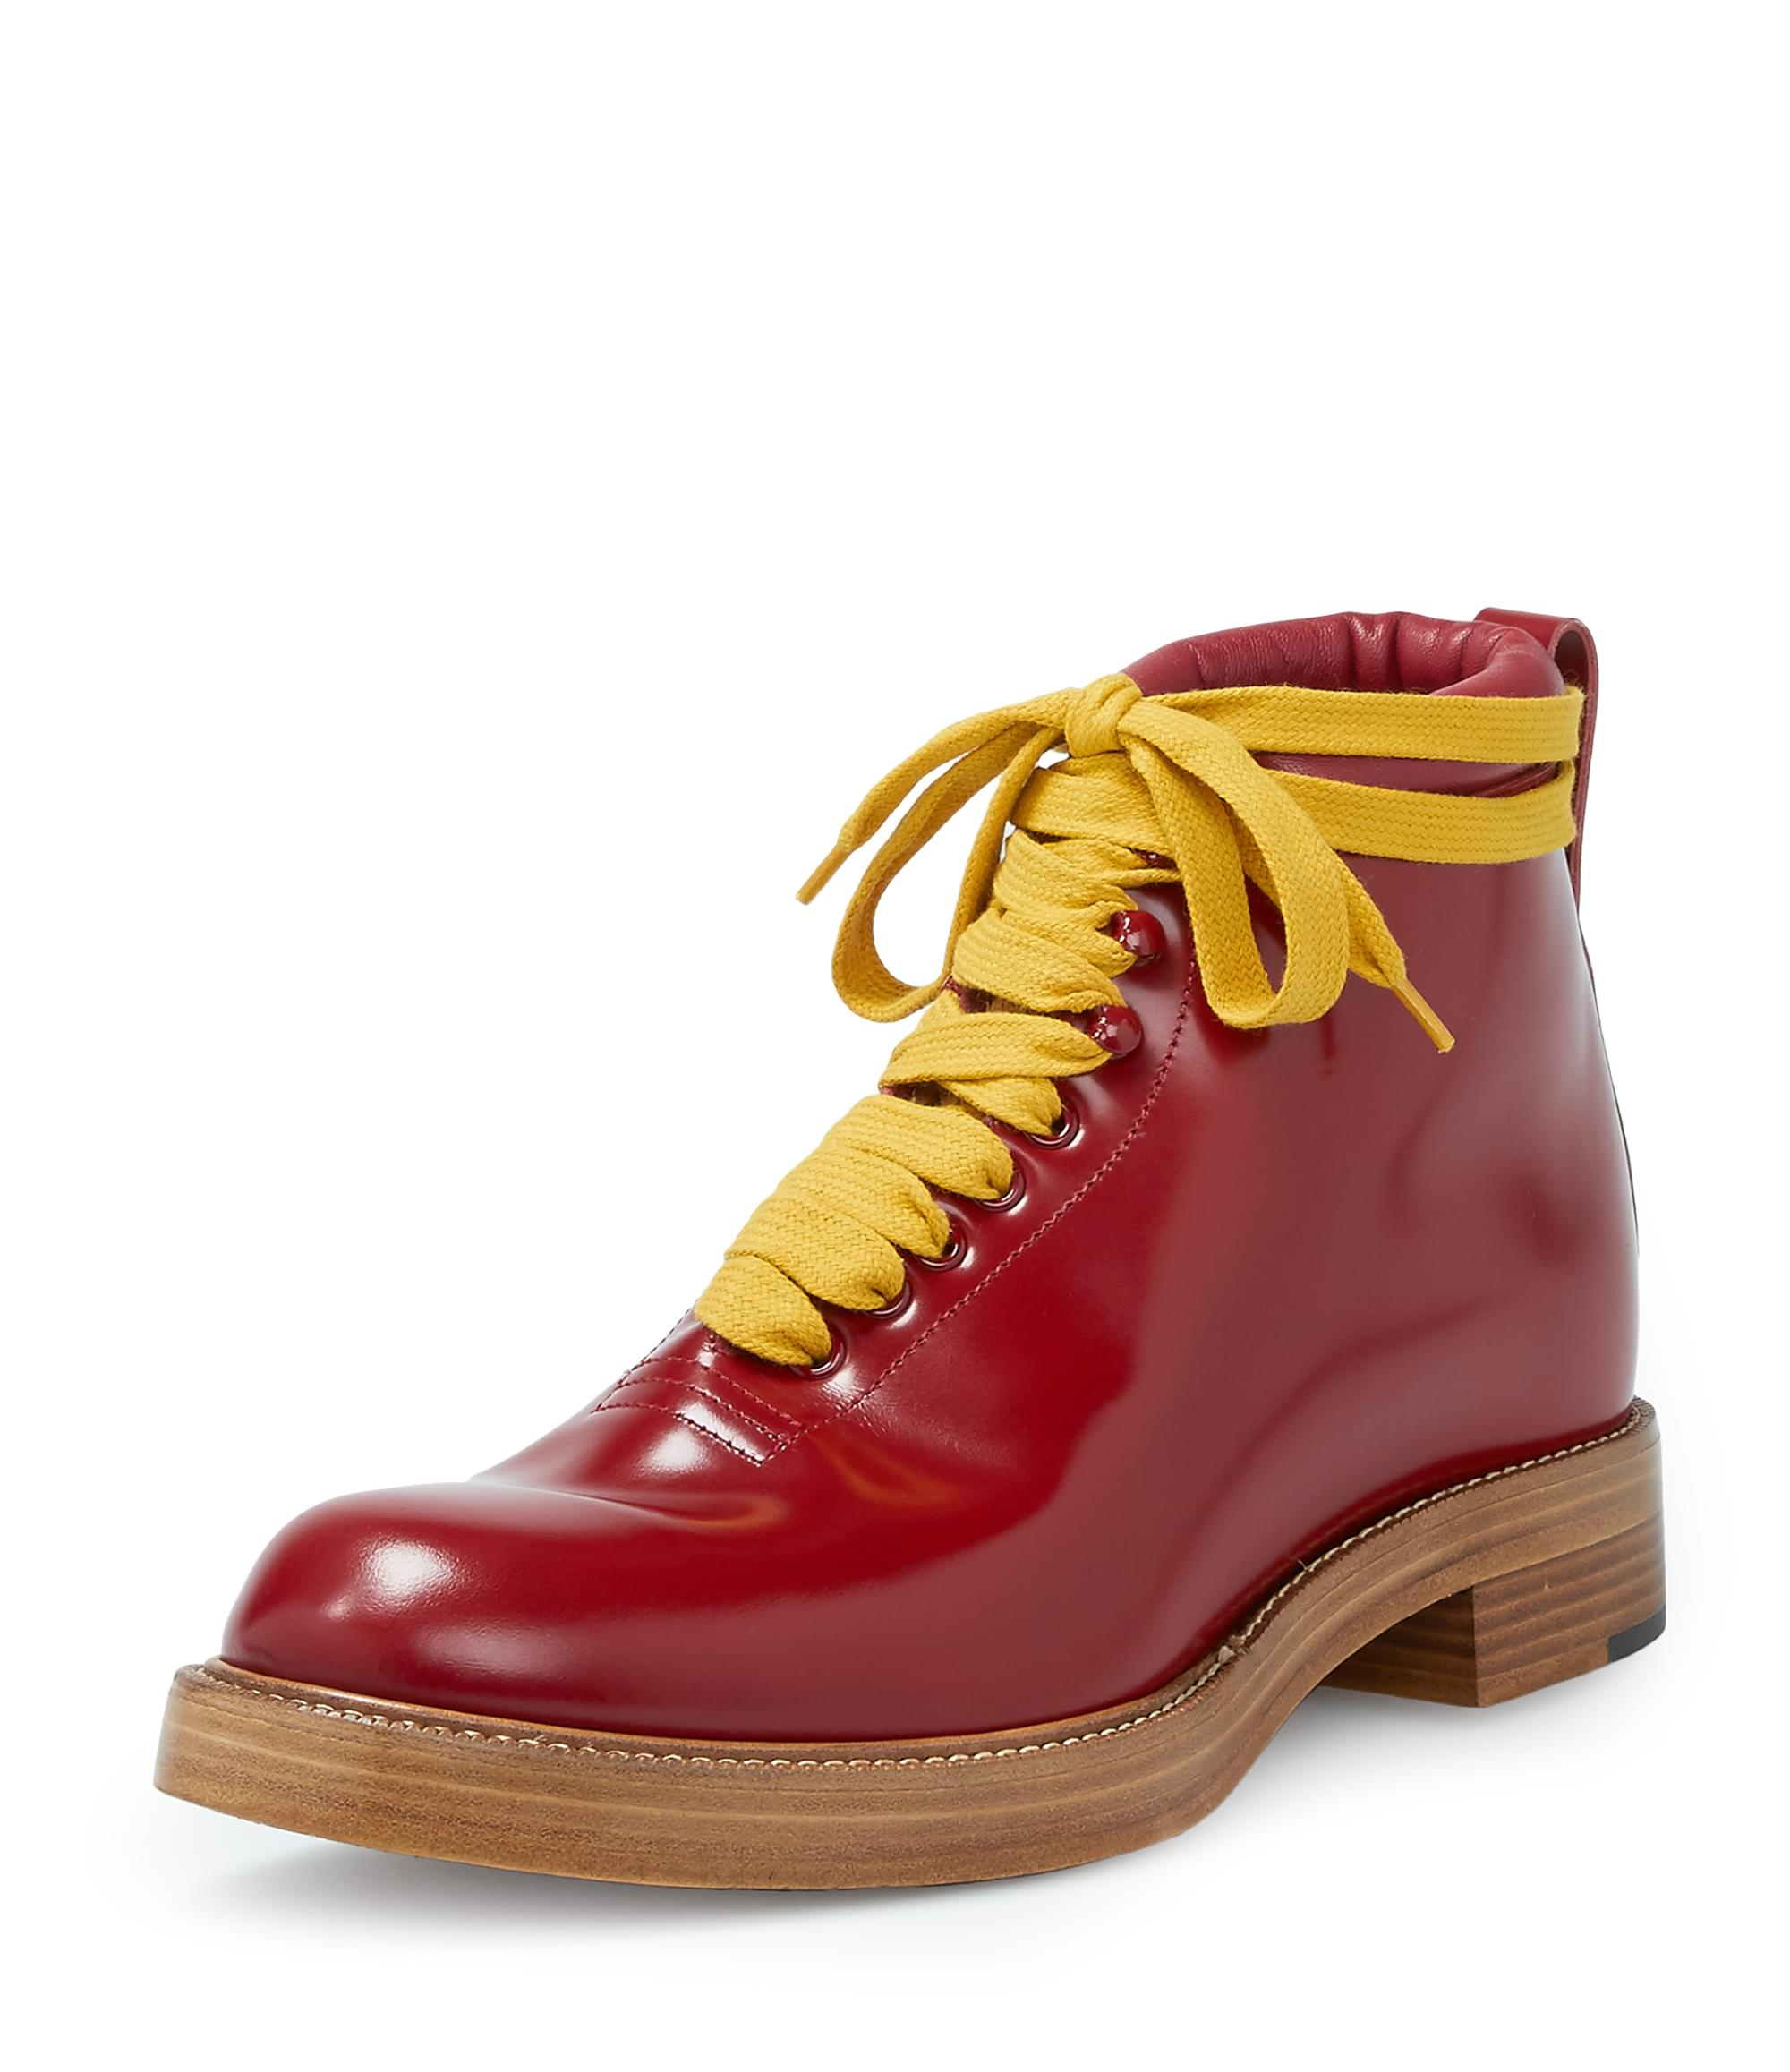 Vivienne Westwood Red Tommy Boots